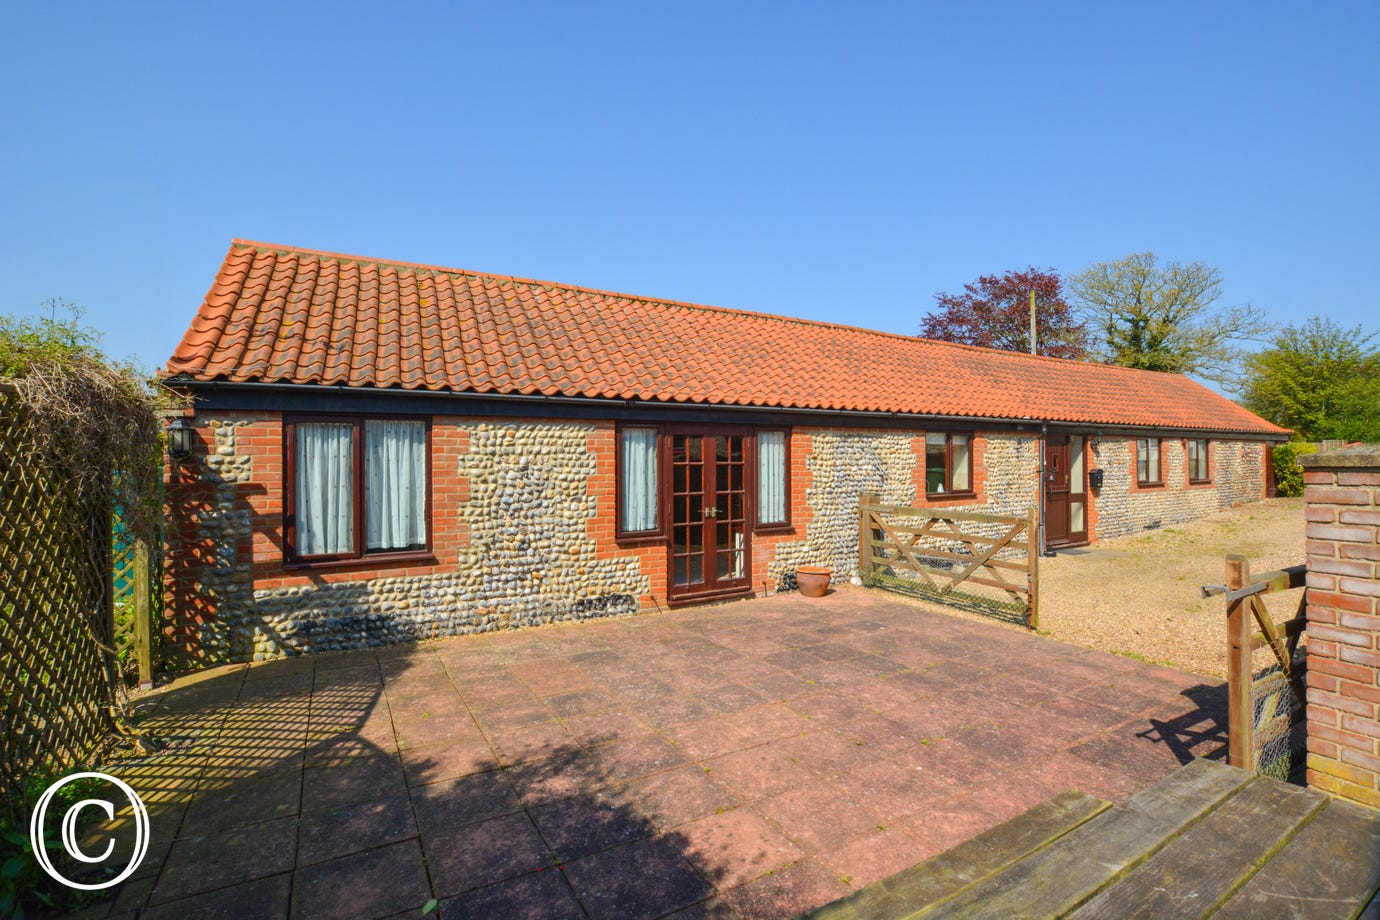 The Stables is an established conversion offering spacious accommodation within walking distance of the beach